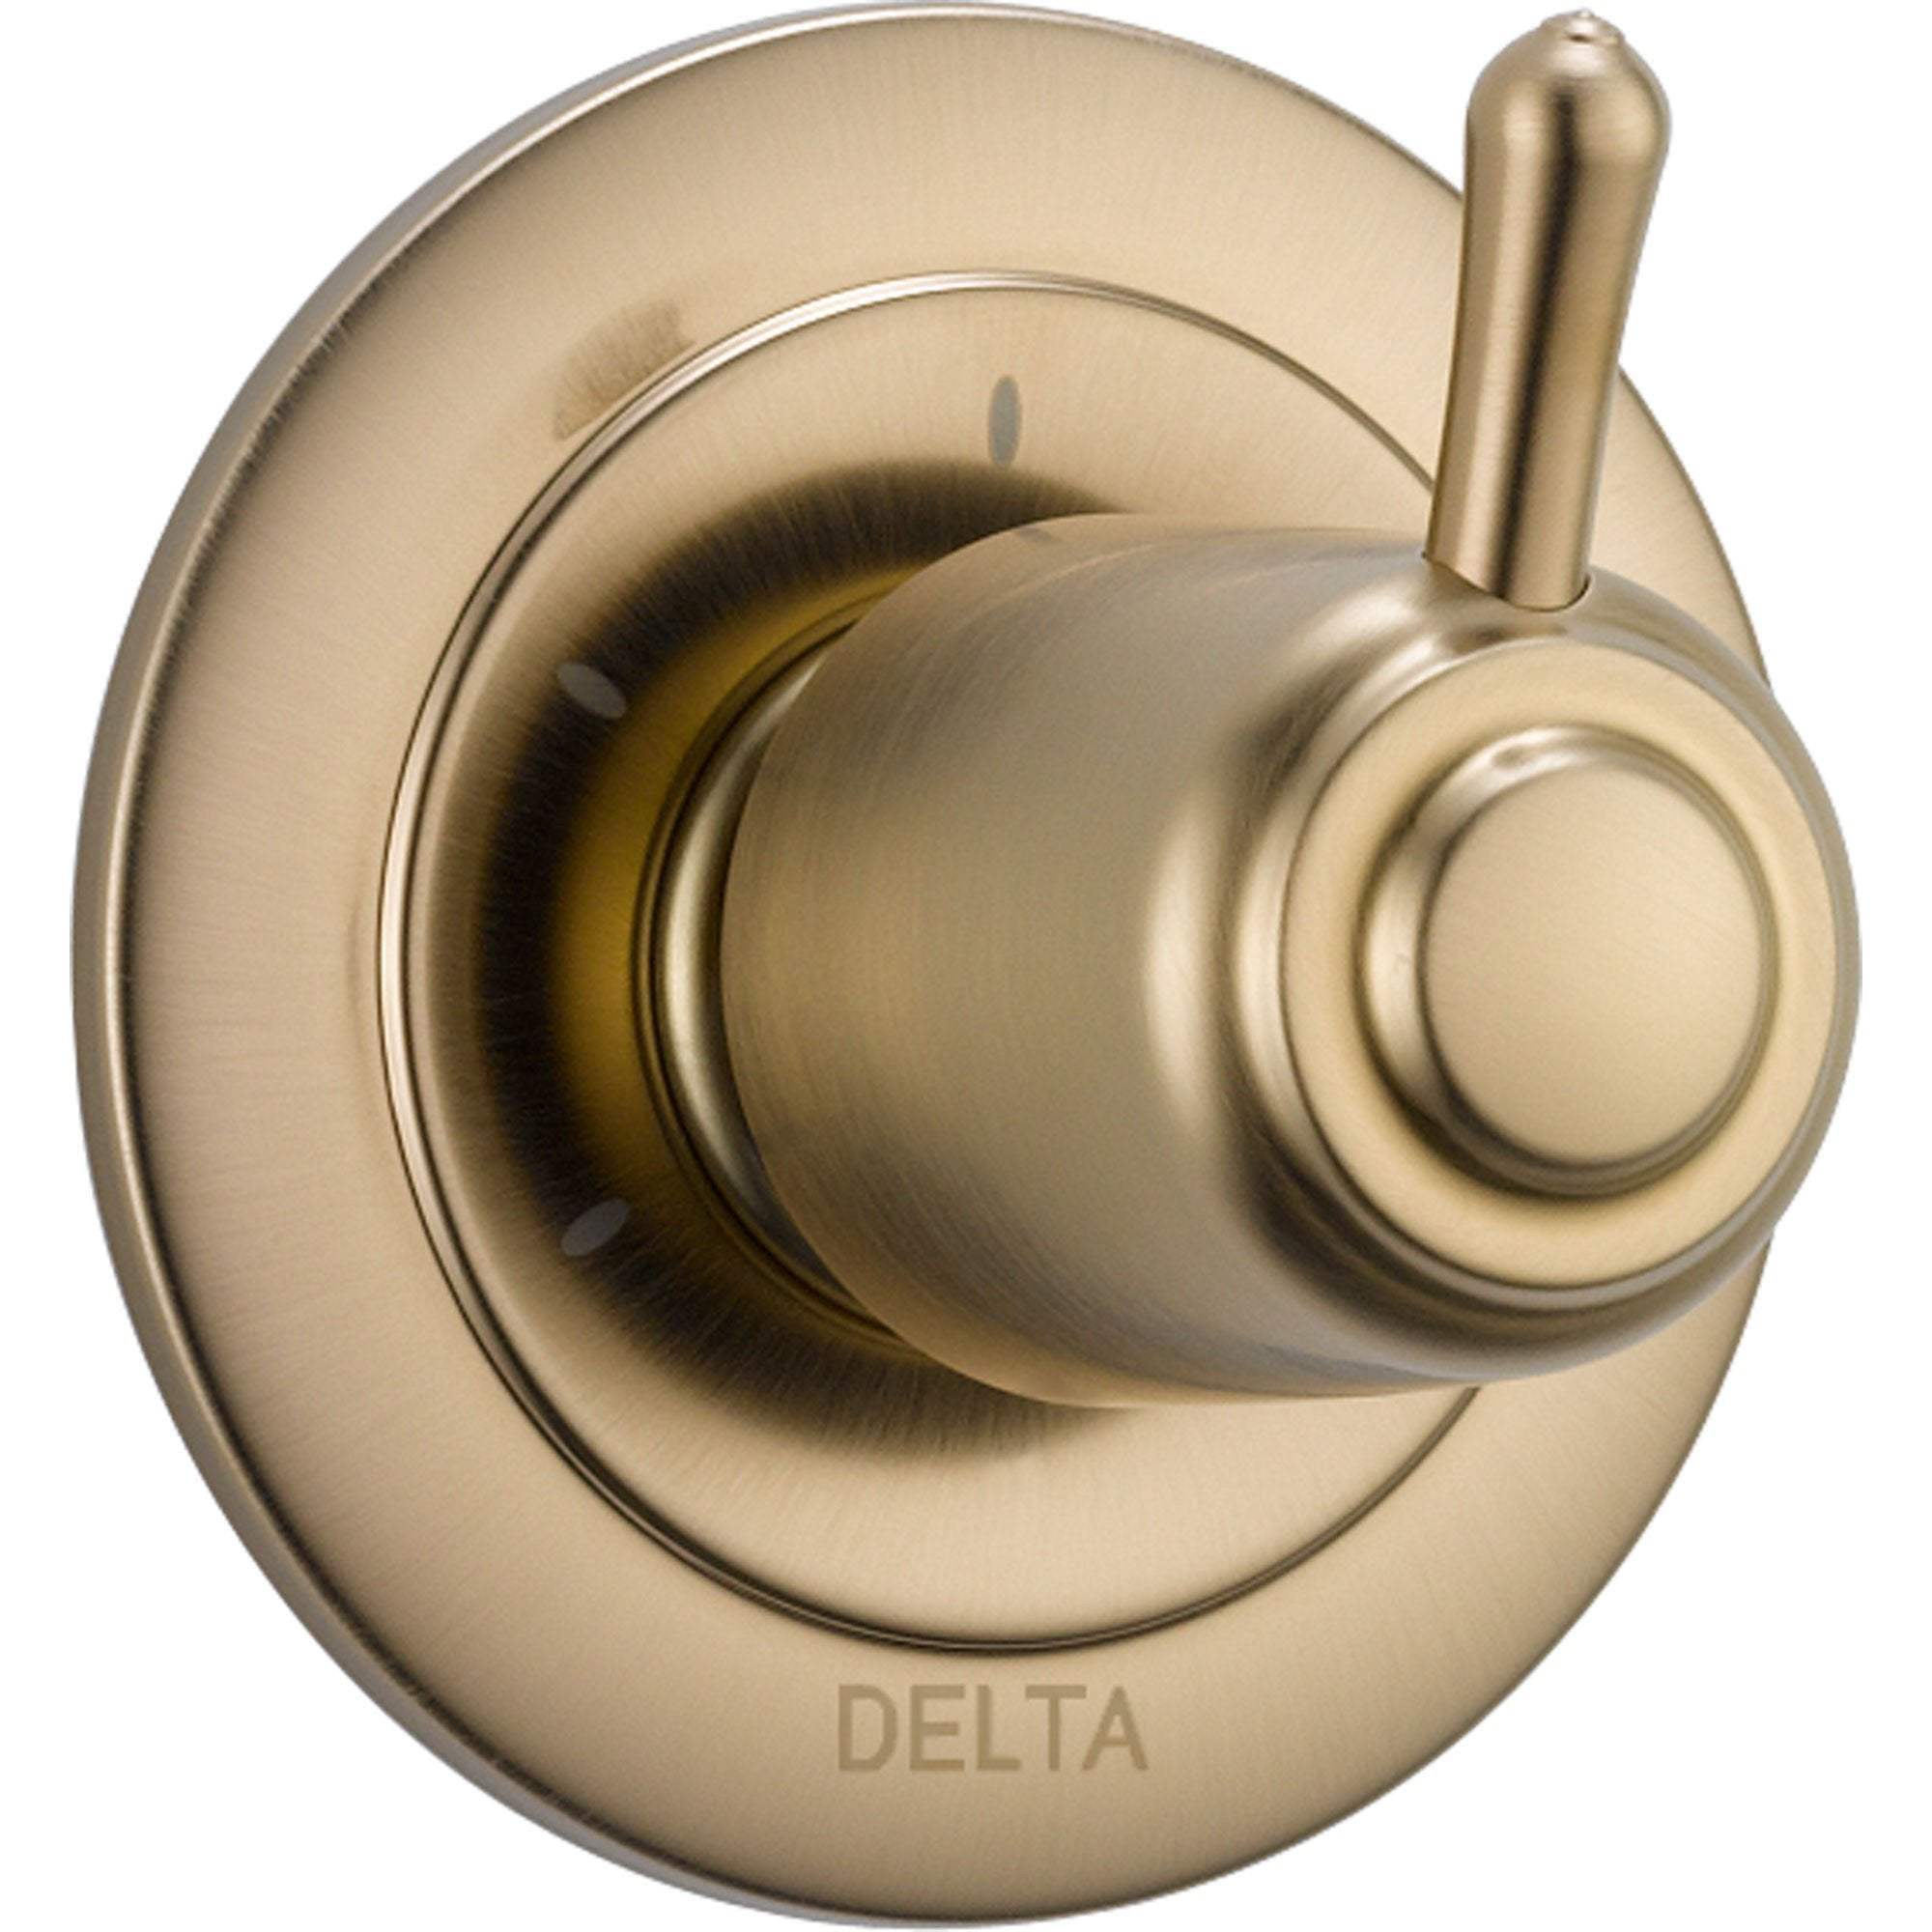 Delta 3-Setting Champagne Bronze Shower Diverter Single Handle Trim Kit 563244